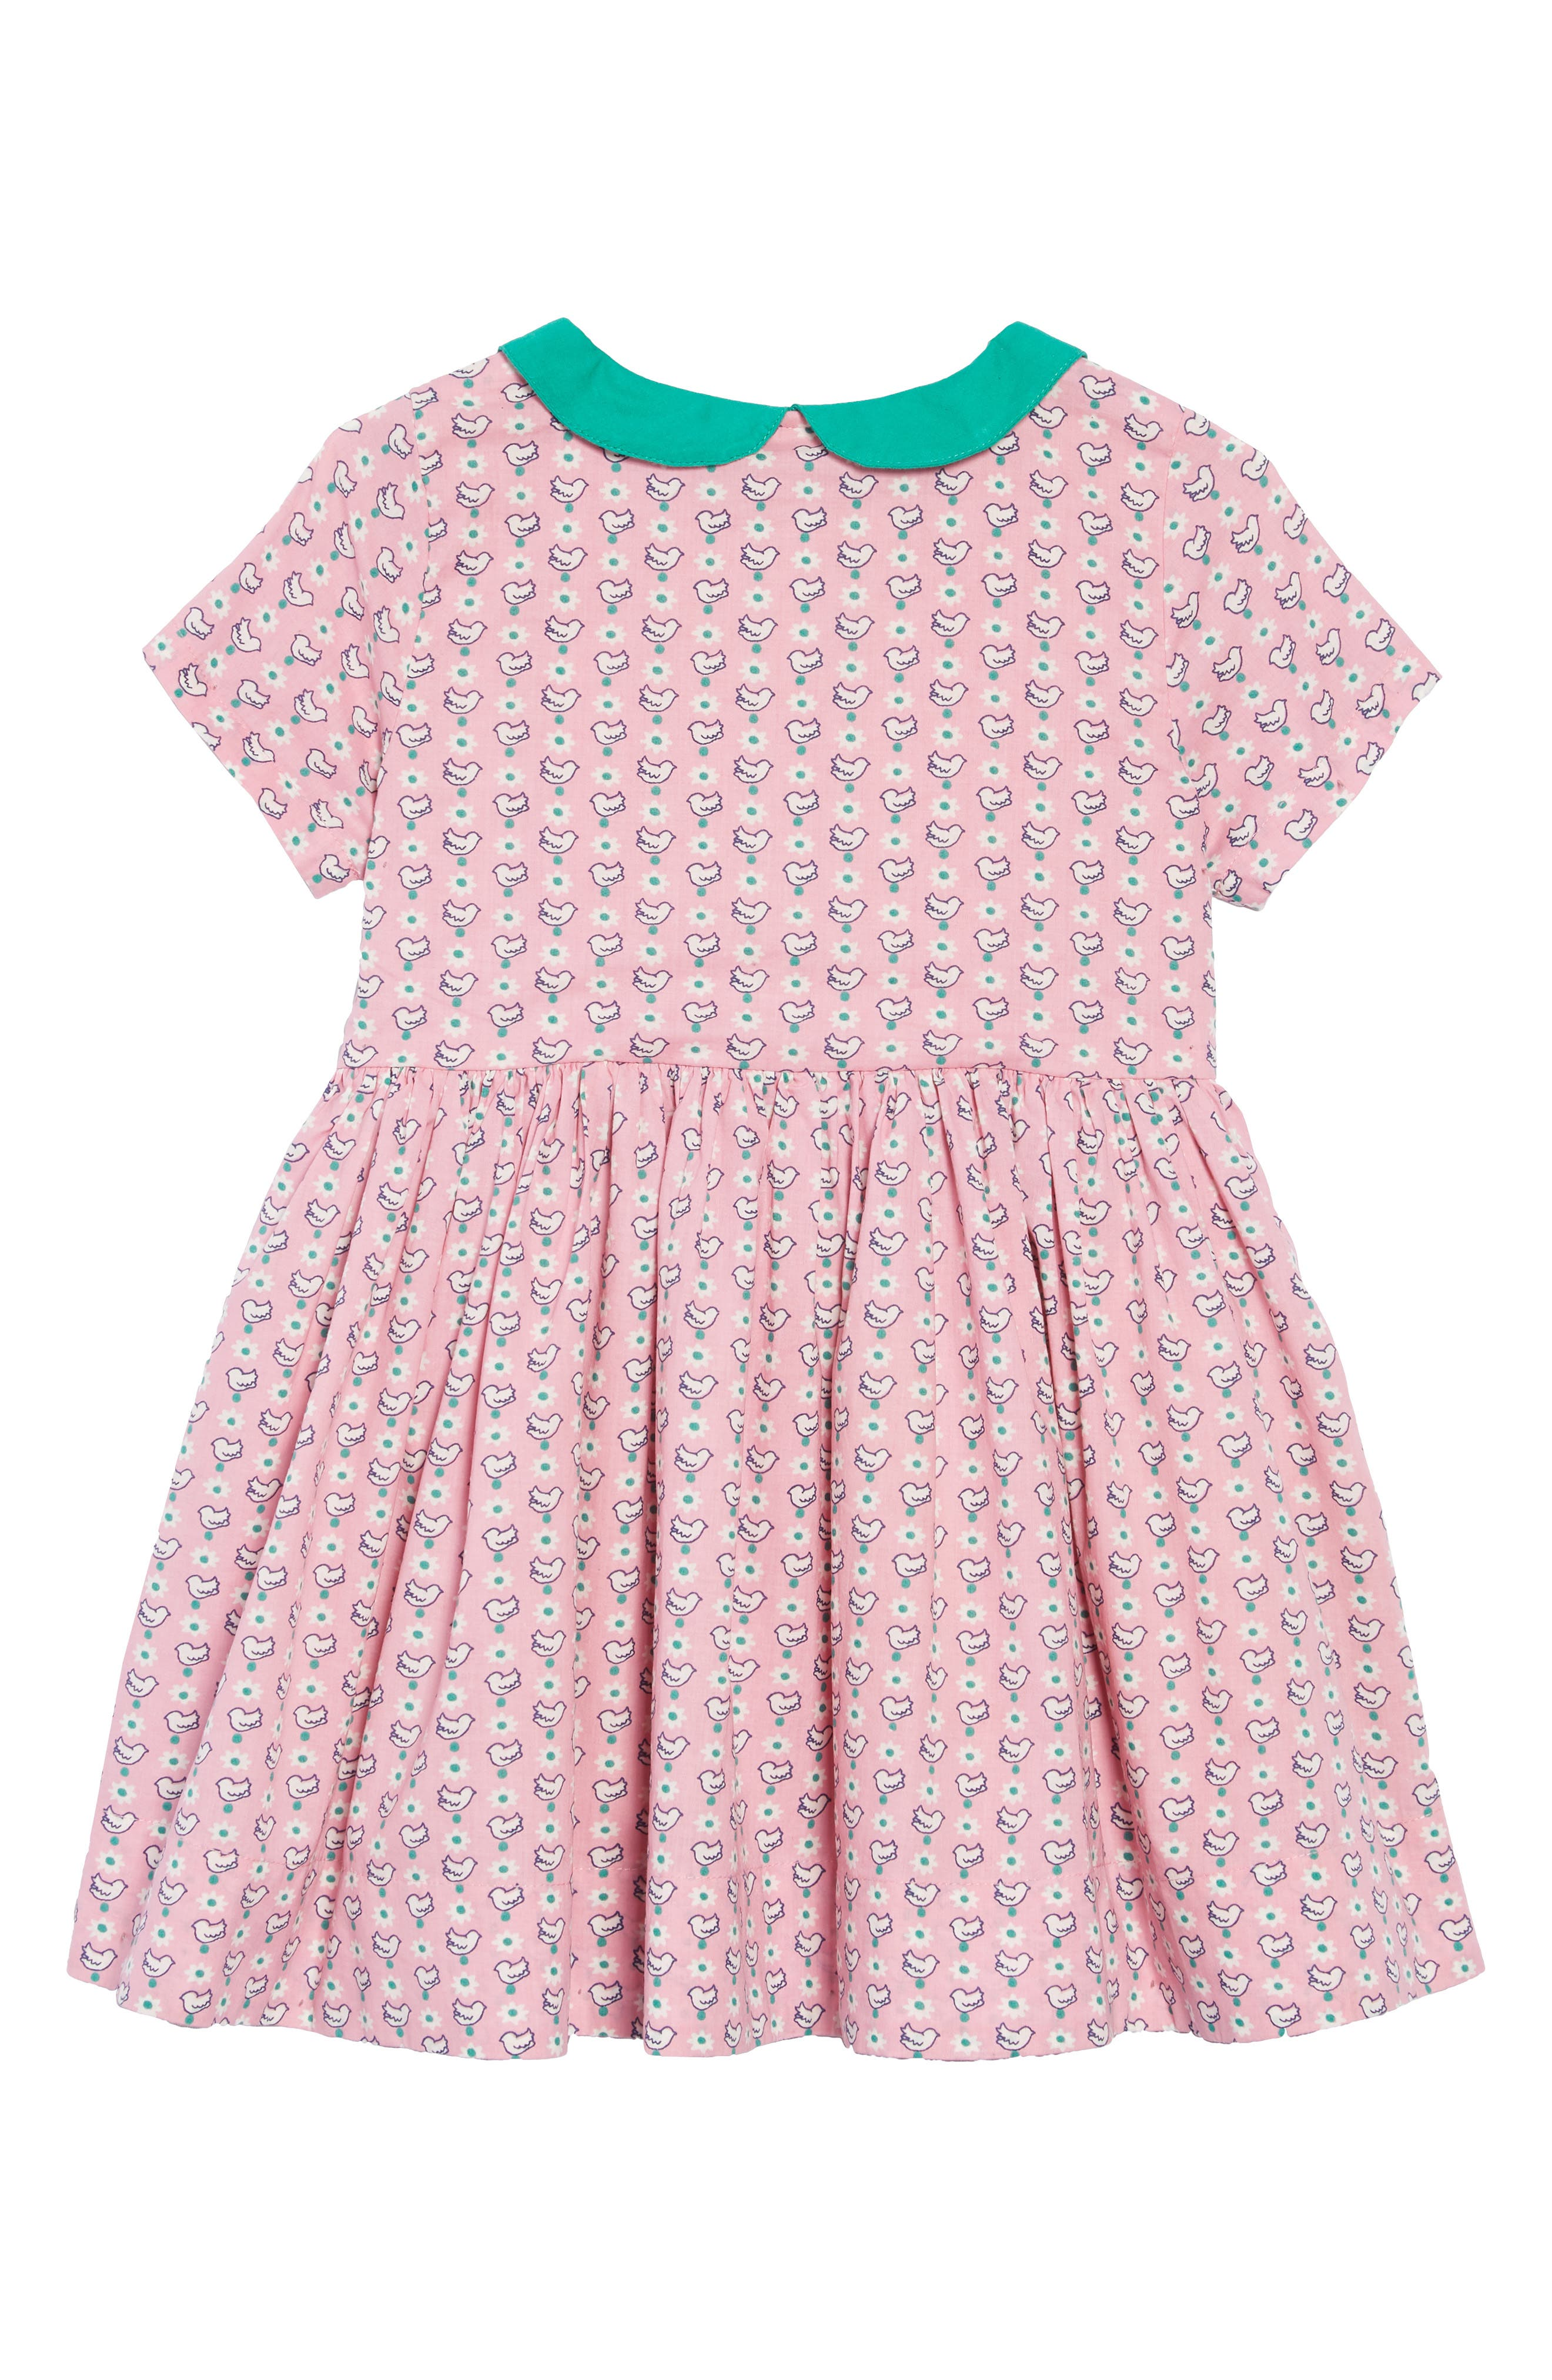 Nostalgic Collared Dress,                             Alternate thumbnail 2, color,                             FORMICA PINK GEO BIRDS